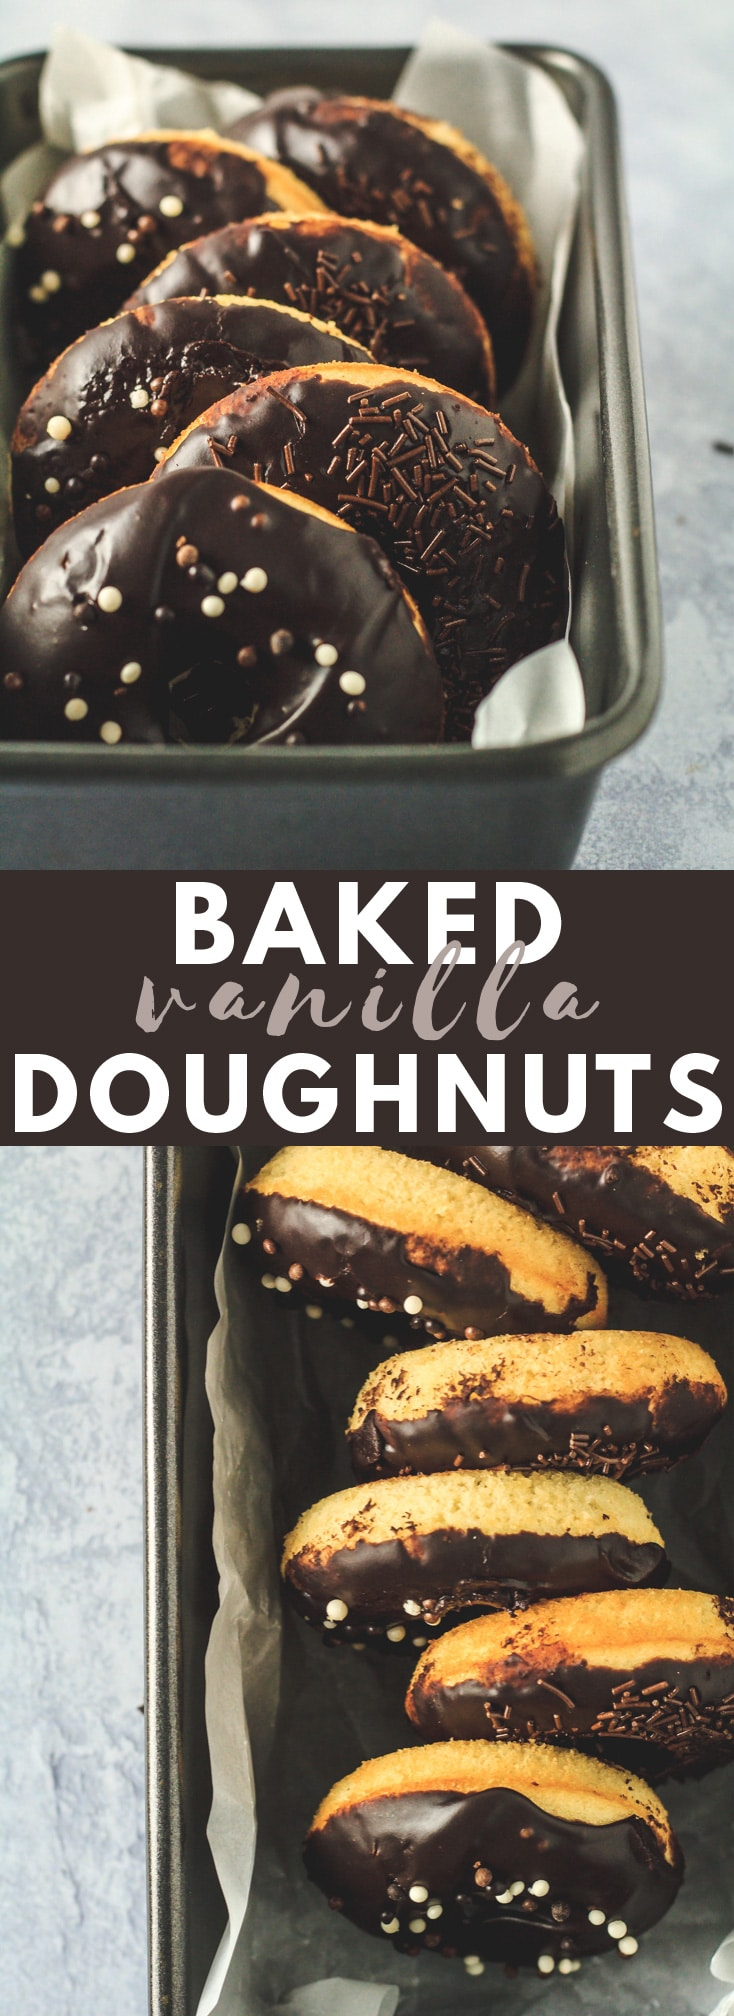 Baked Vanilla Doughnuts - Deliciously moist and fluffy doughnuts that are BAKED, not fried, infused with vanilla, and topped with a thick chocolate glaze!